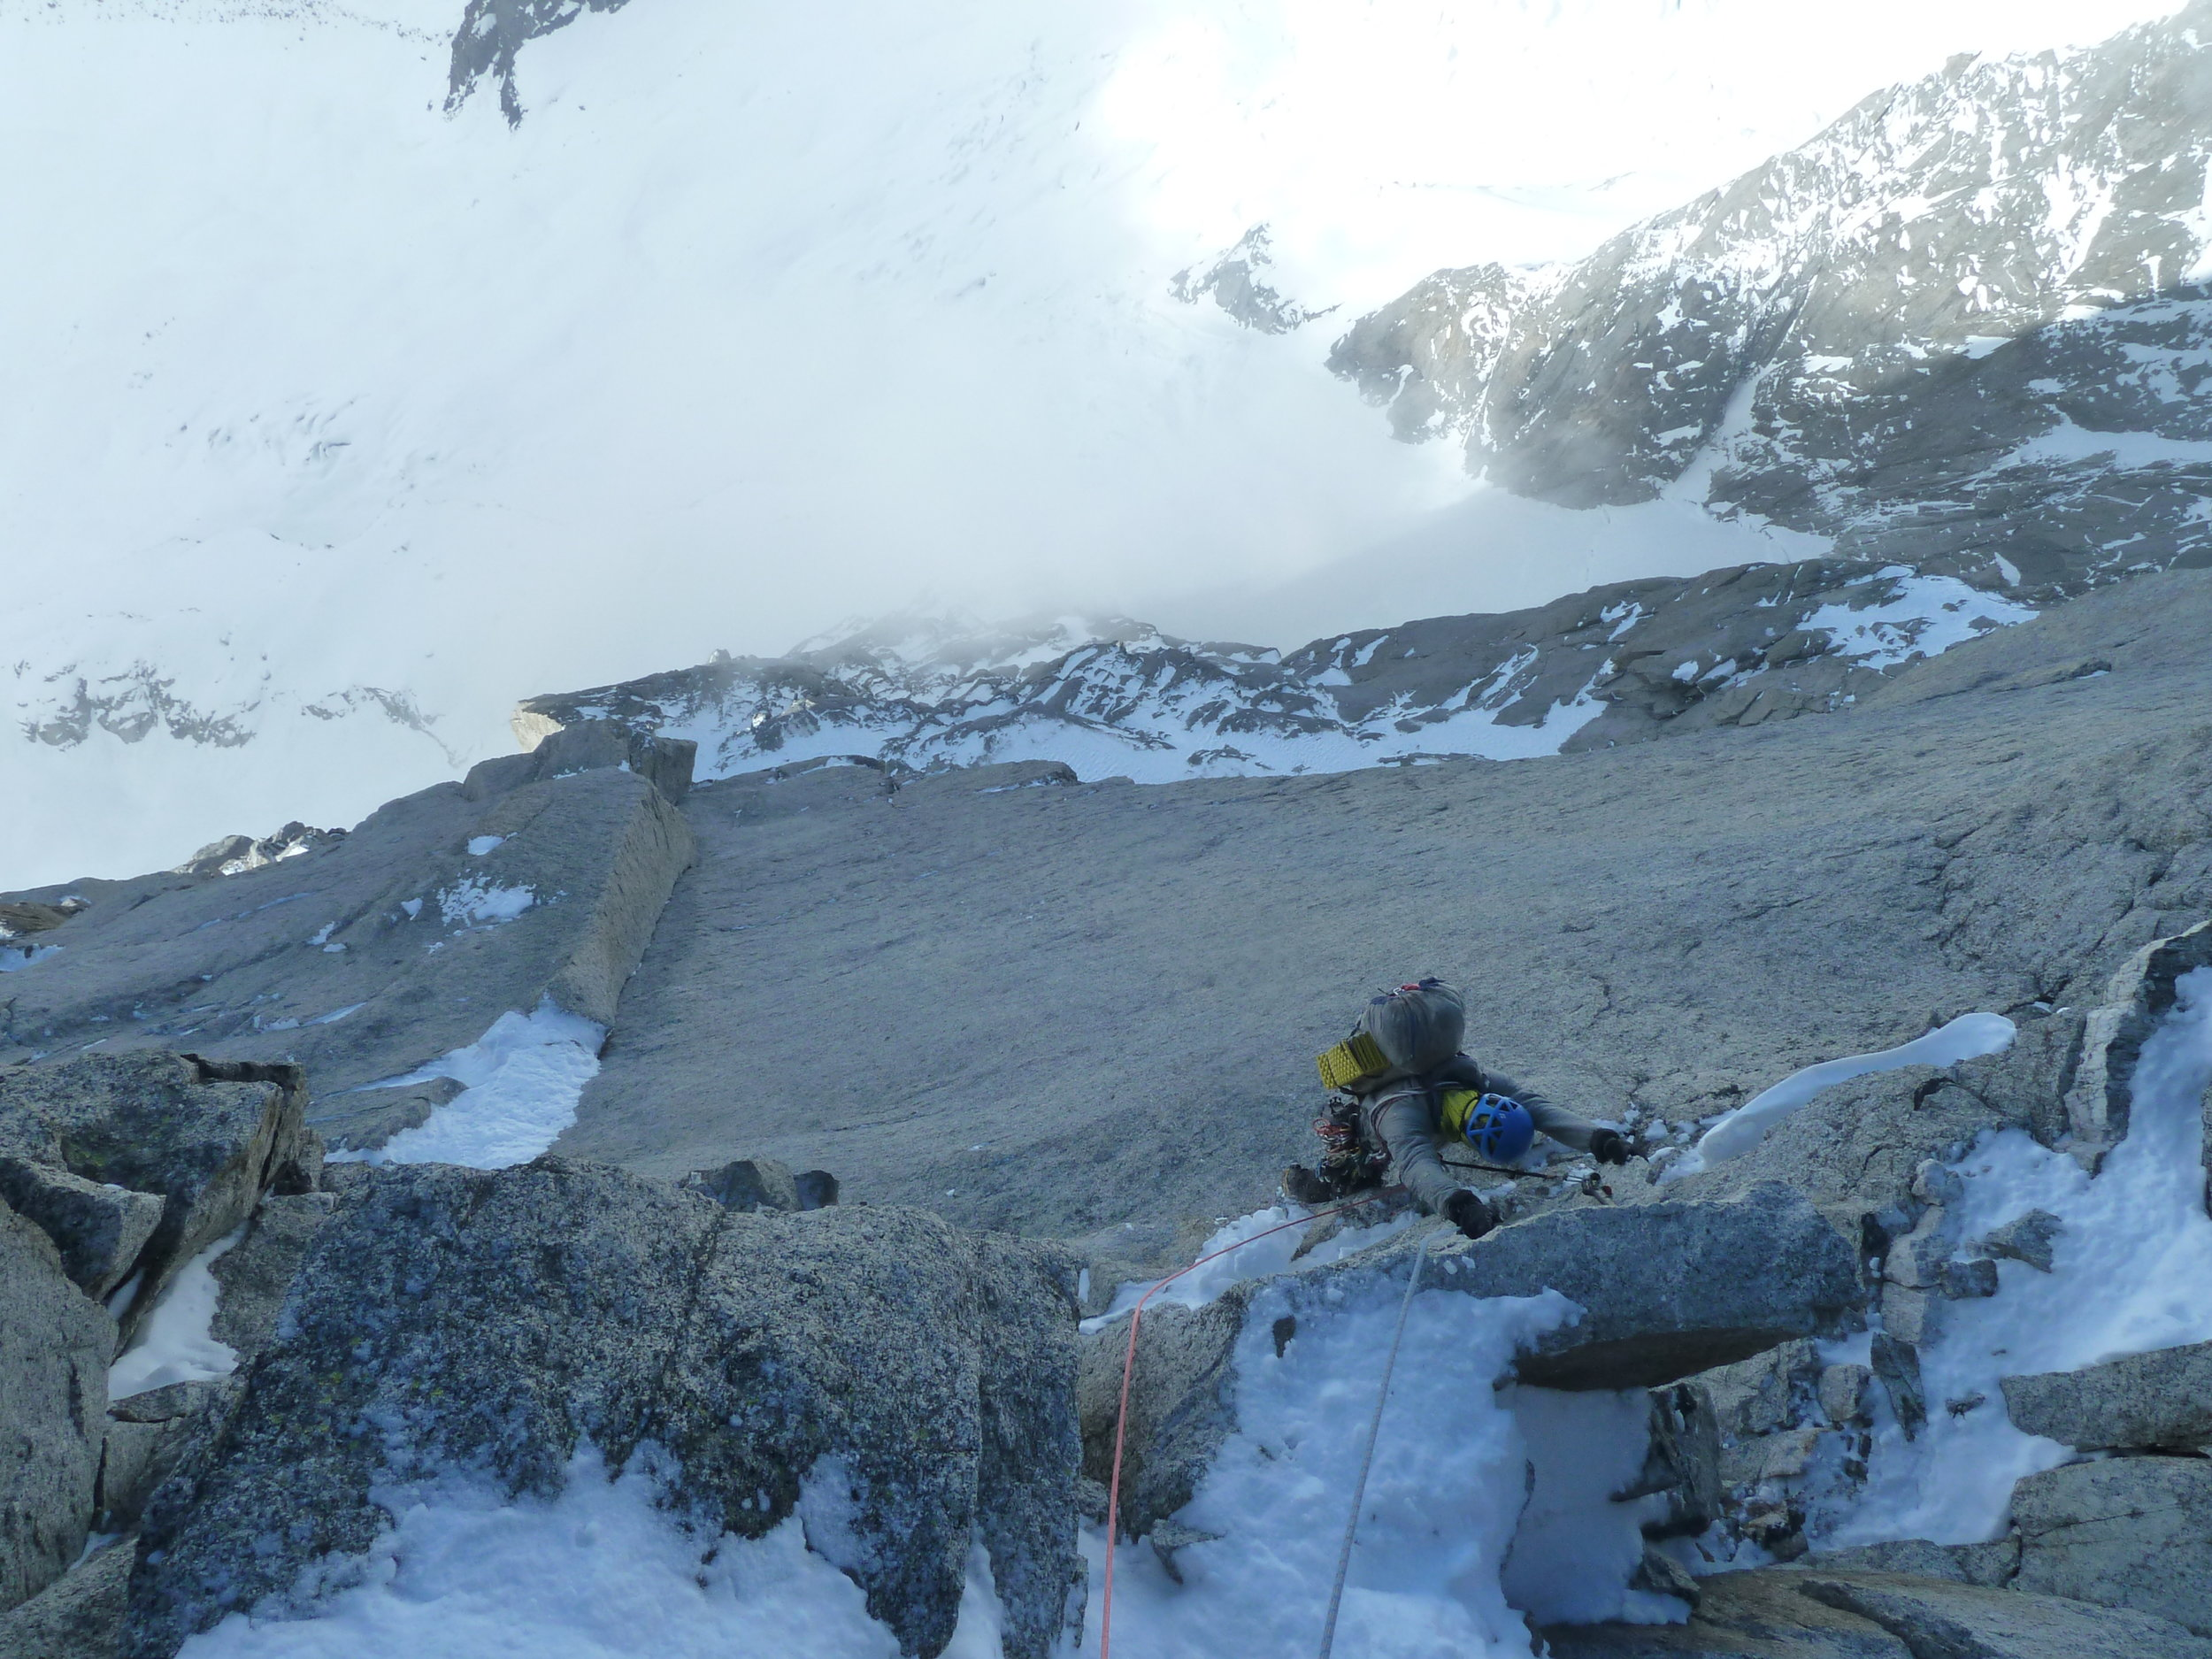 kim ladiges on the pierre allain/classic route, le dru, mont blanc massif. chamonix